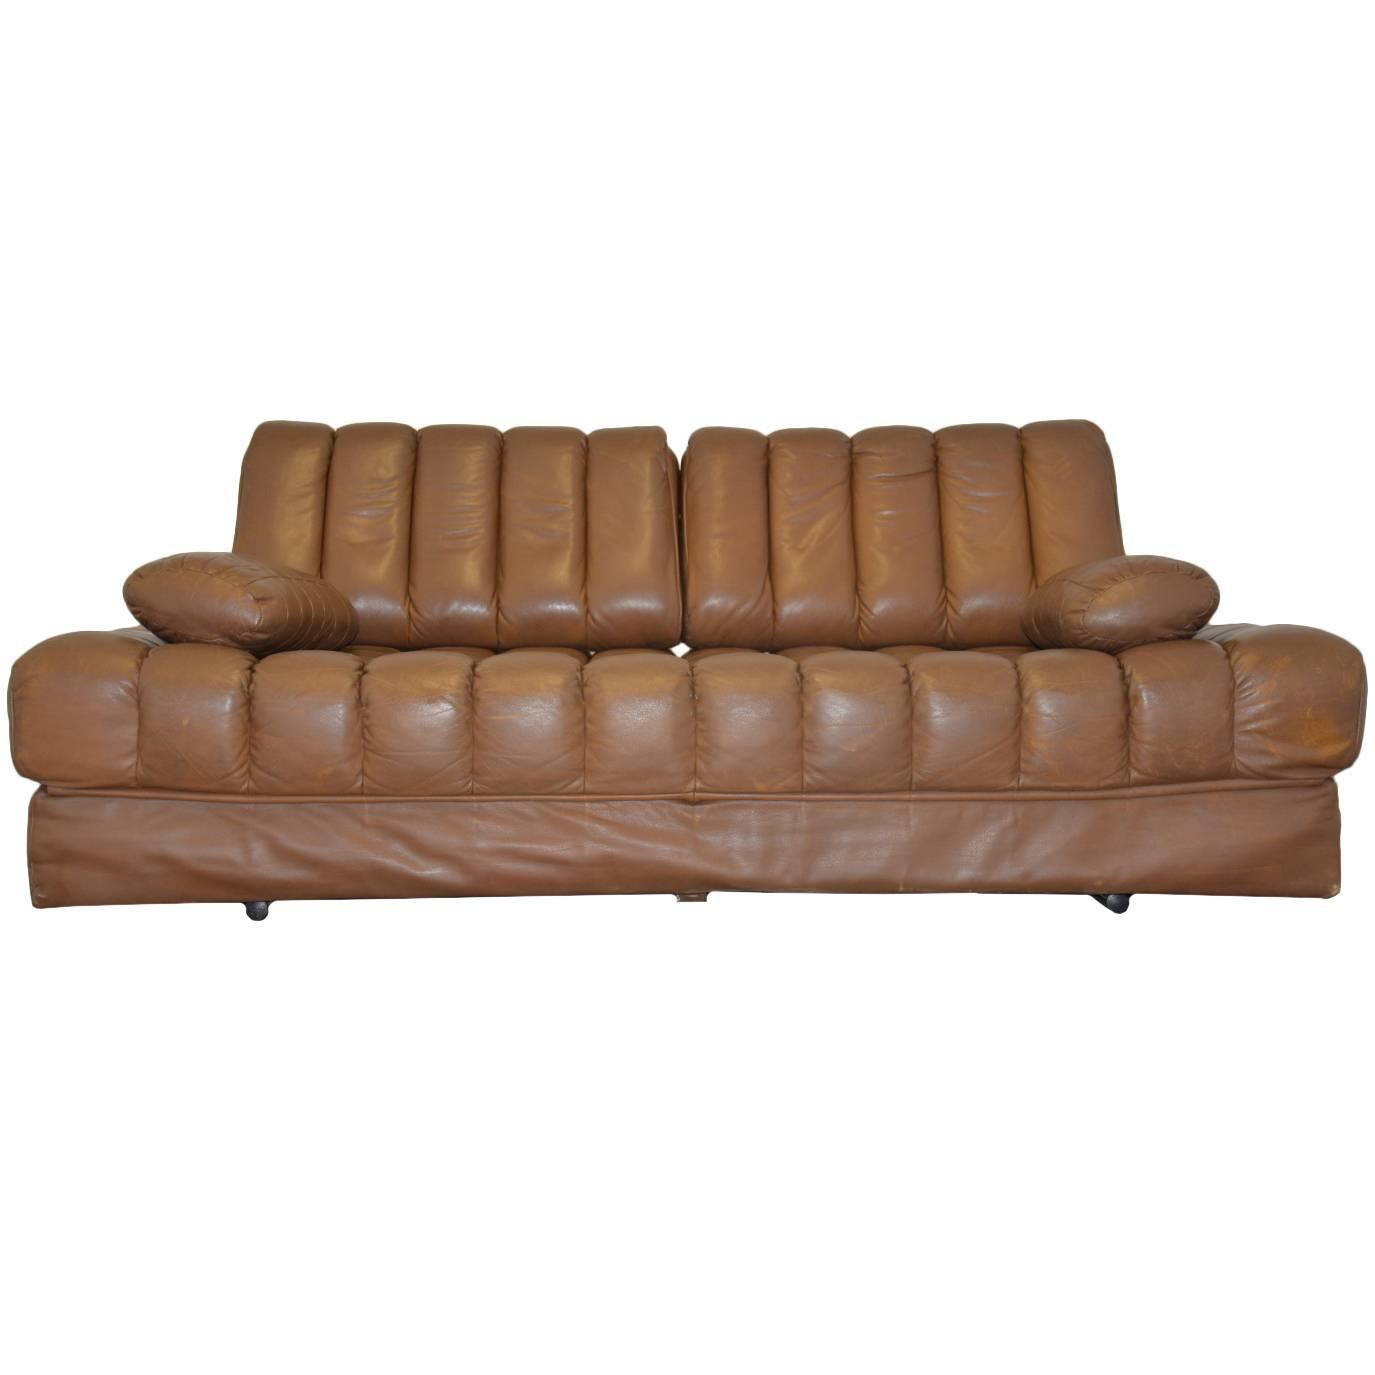 sofa bed uk under 100 restoration hardware maxwell beds 200 couch minimalist suitable